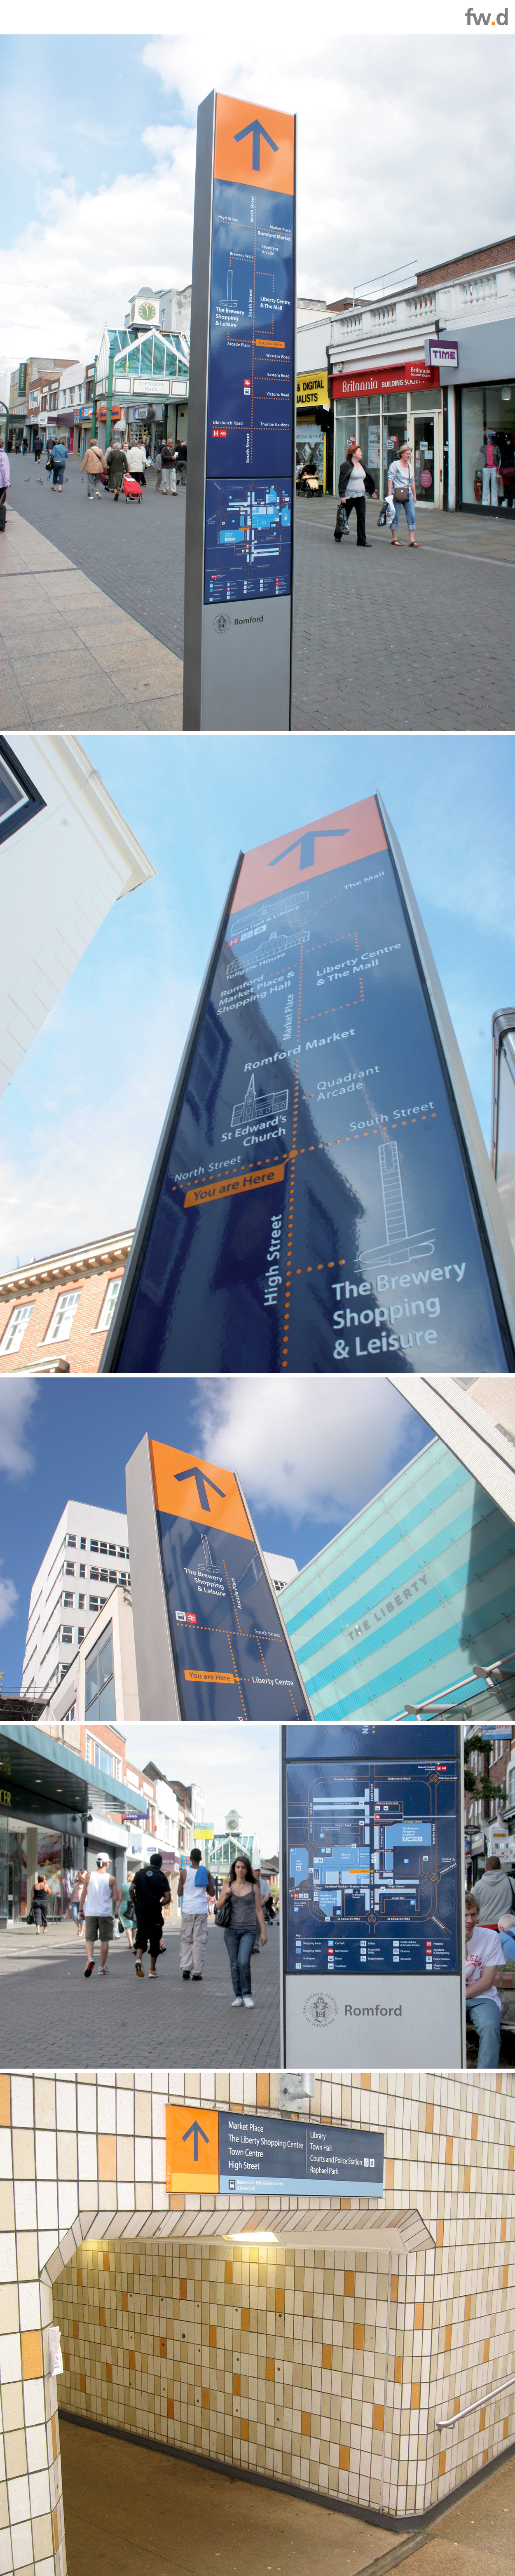 Innovative pedestrian wayfinding & signage design for Romford Town Centre by fwdesign.  www.fwdesign.com